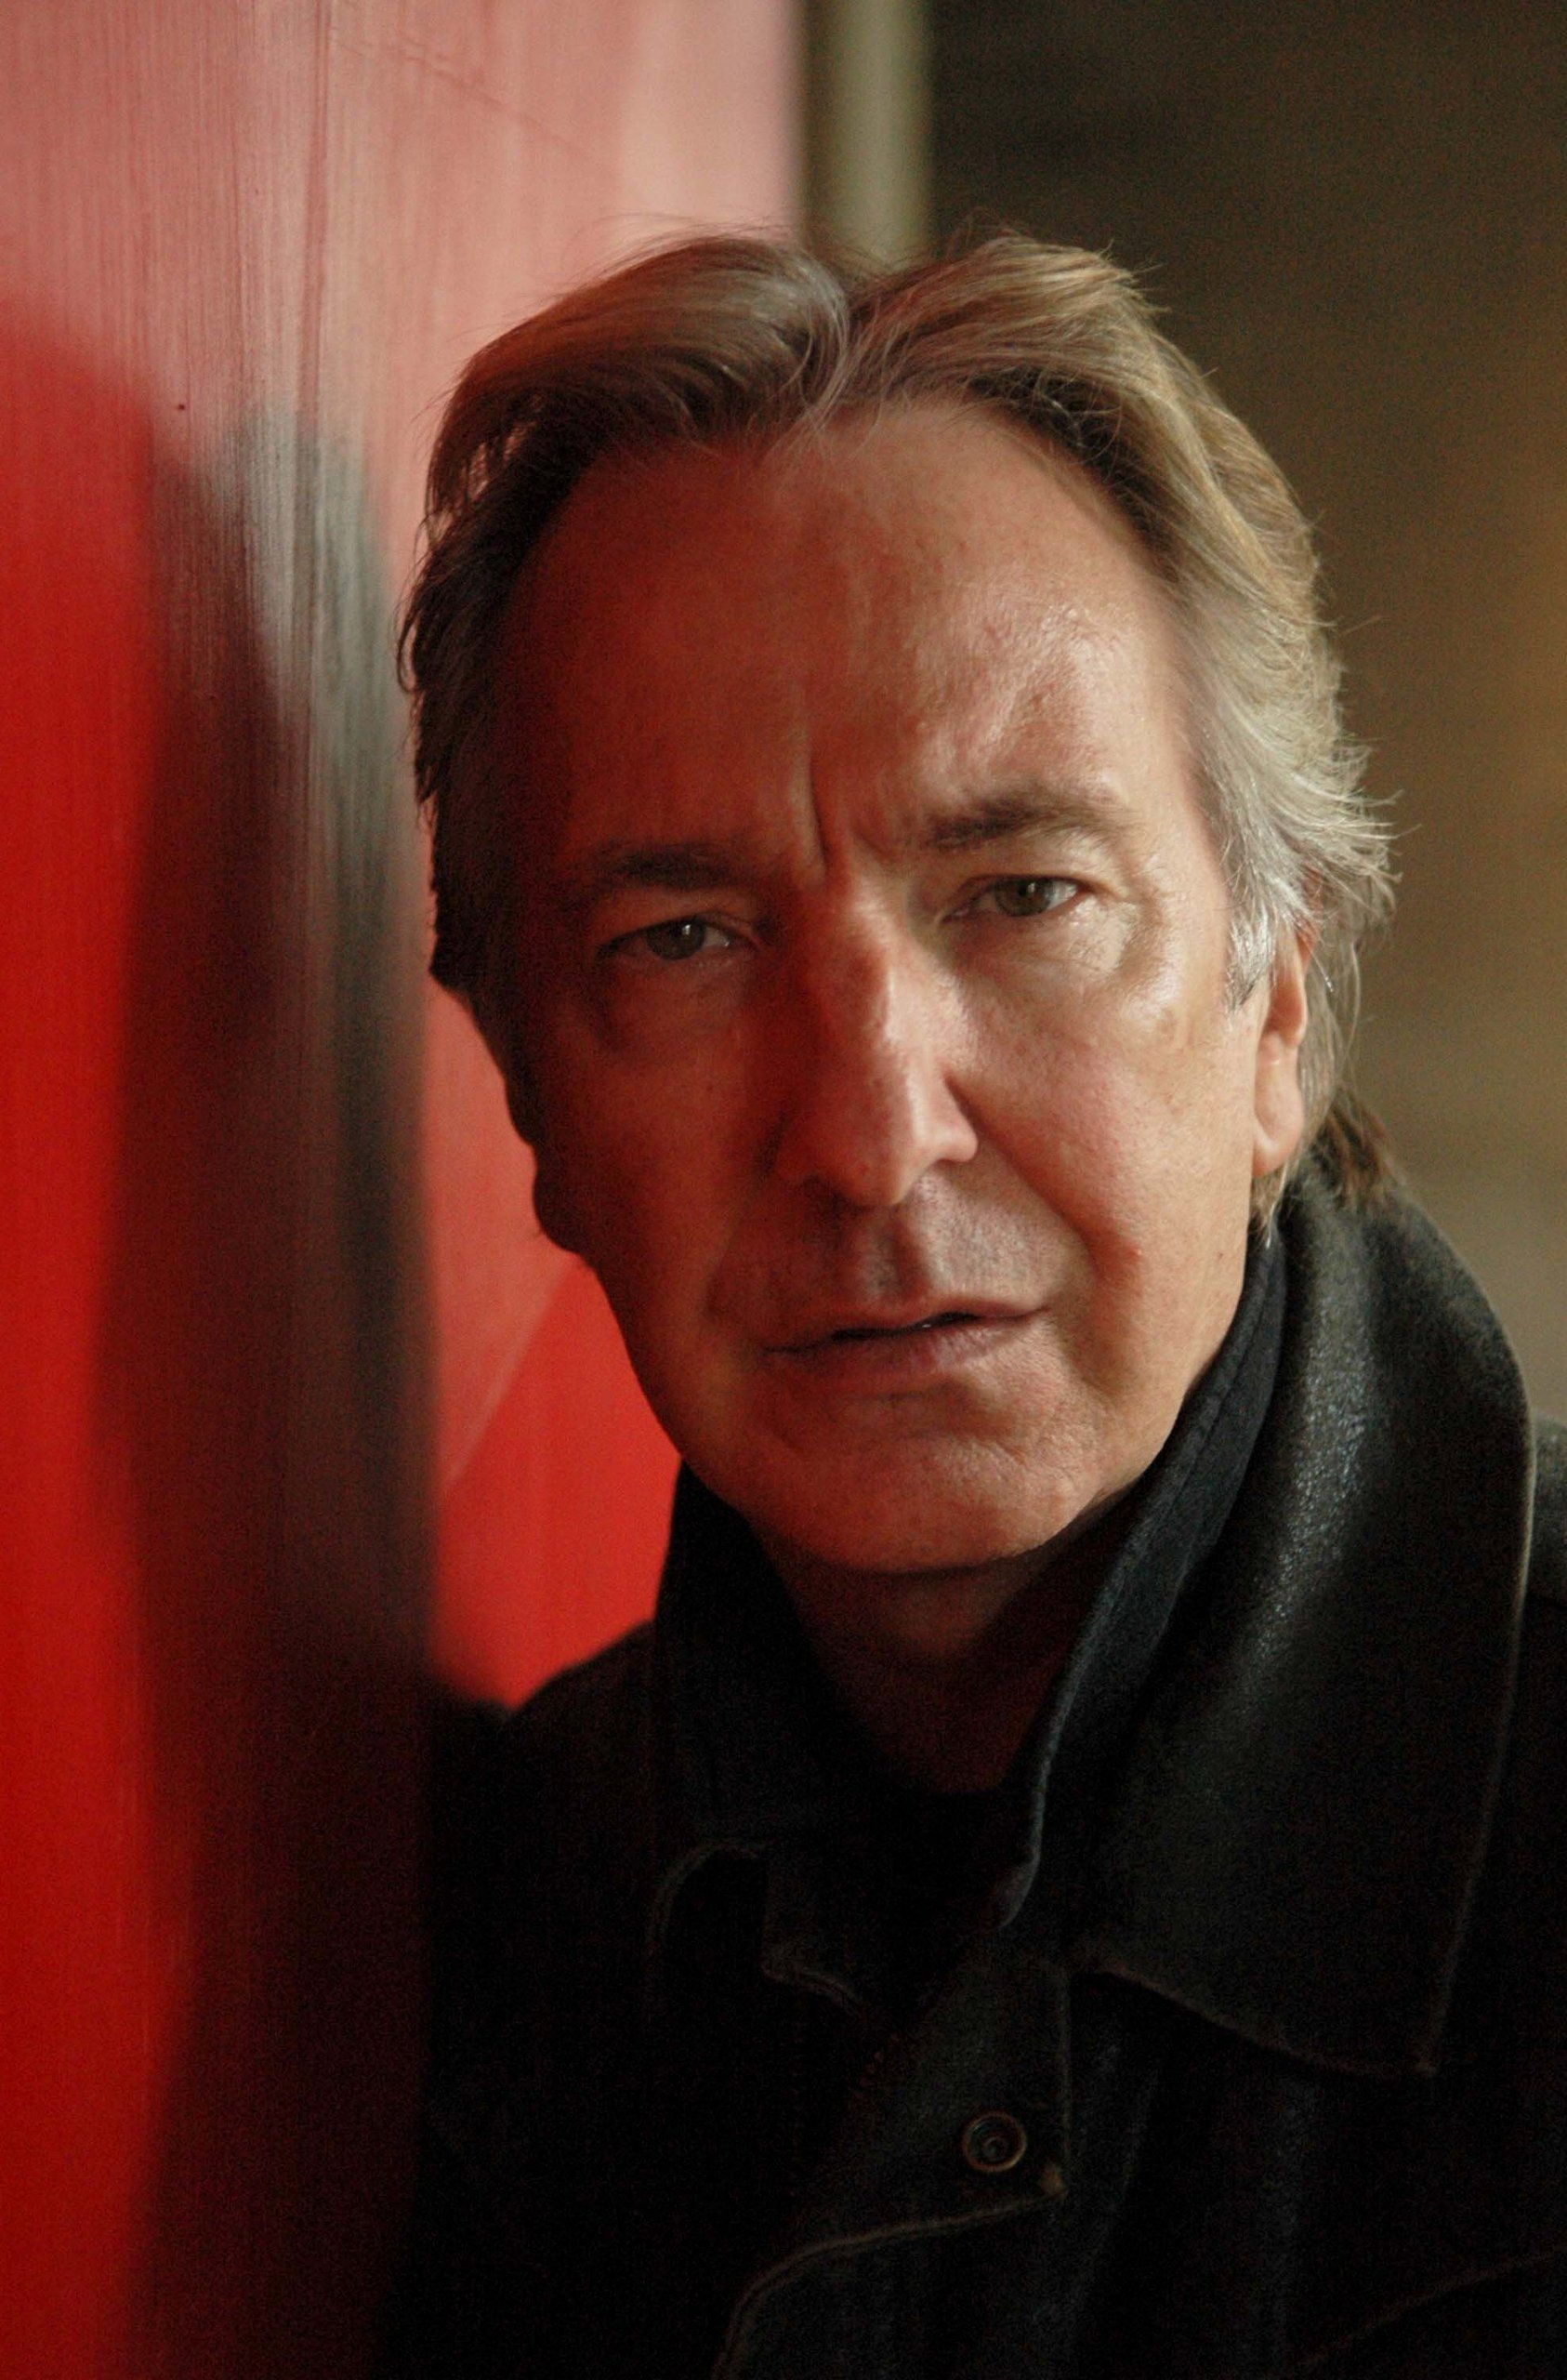 alan rickman wikialan rickman voice, alan rickman always, alan rickman harry potter, alan rickman death, alan rickman gif, alan rickman movies, alan rickman quotes, alan rickman dogma, alan rickman wife, alan rickman tumblr, alan rickman died, alan rickman умер, alan rickman wikipedia, alan rickman severus snape, alan rickman twitter, alan rickman art, alan rickman fan art, alan rickman intelligence, alan rickman instagram, alan rickman wiki